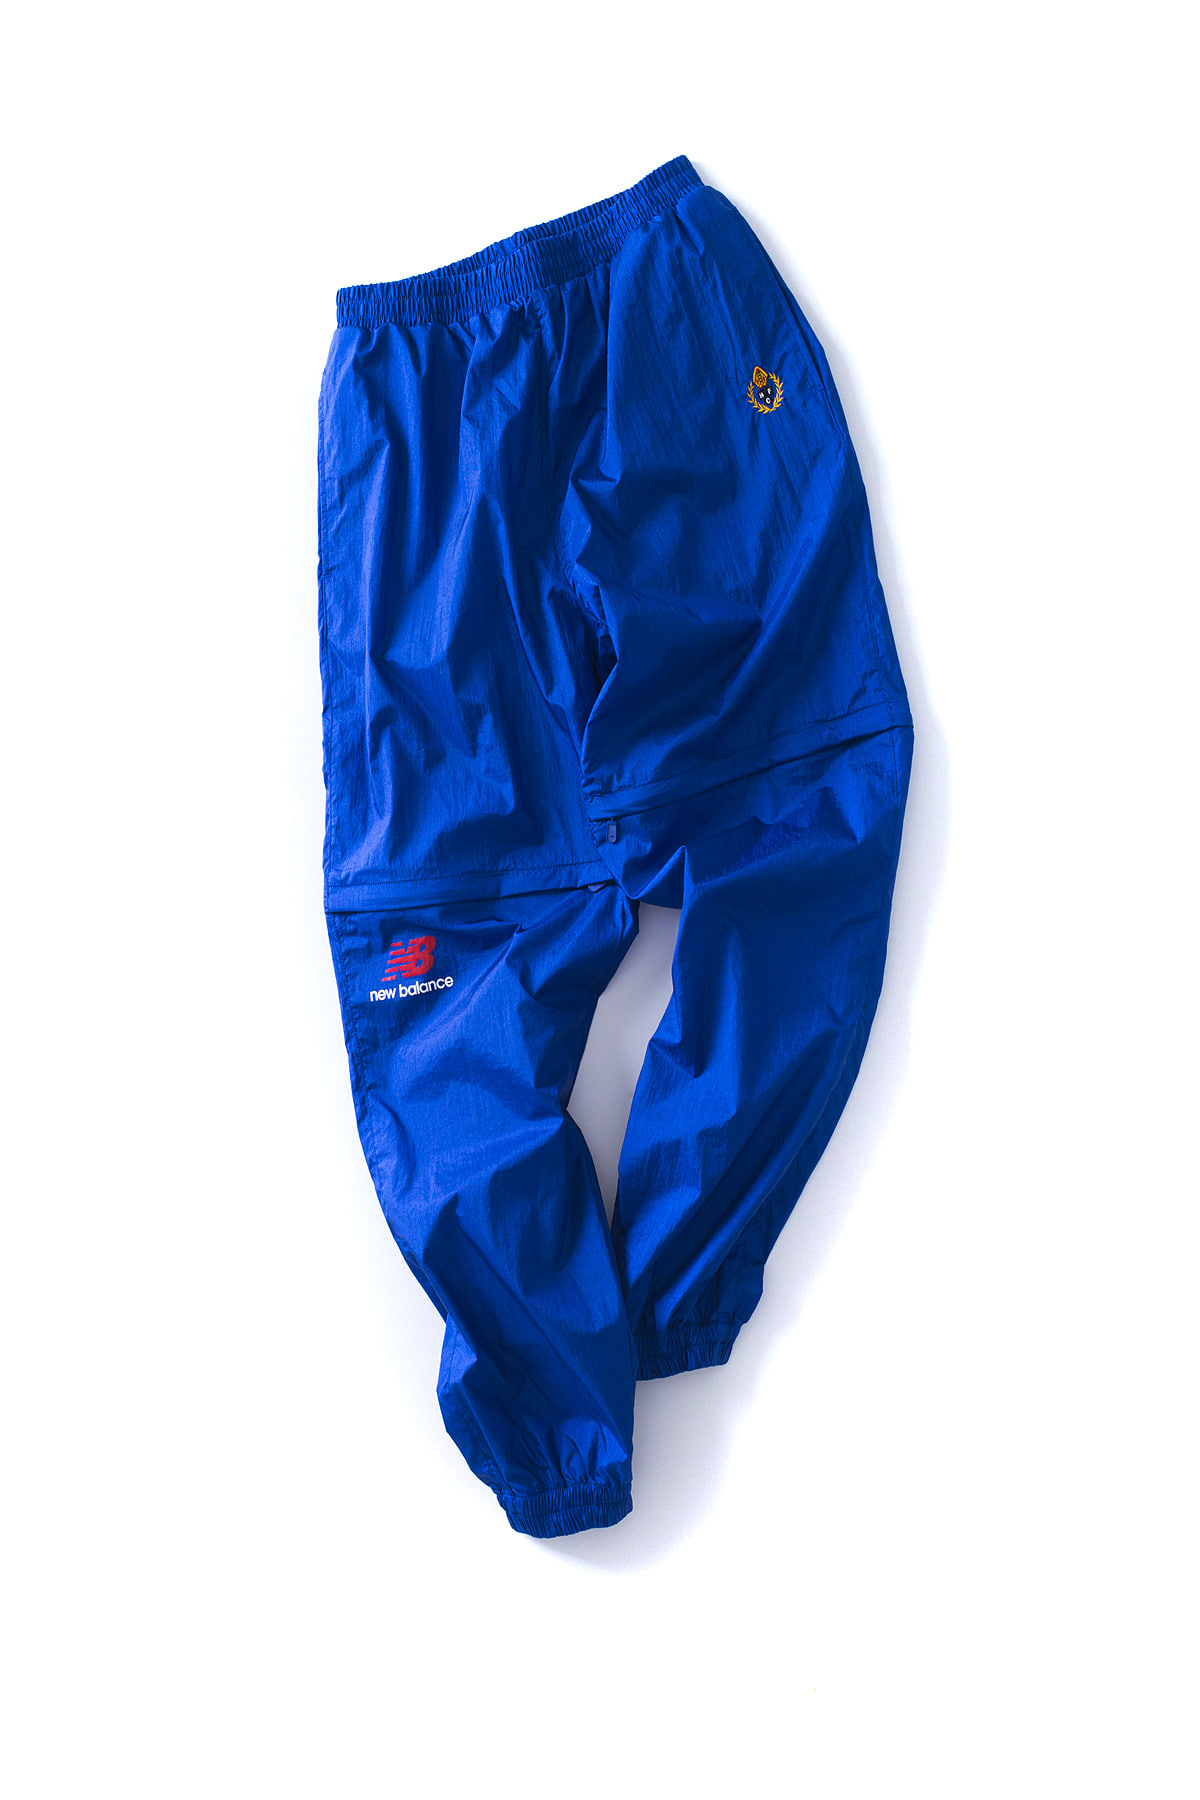 NB X Heritage Floss : Nylon Track Pants (Blue)